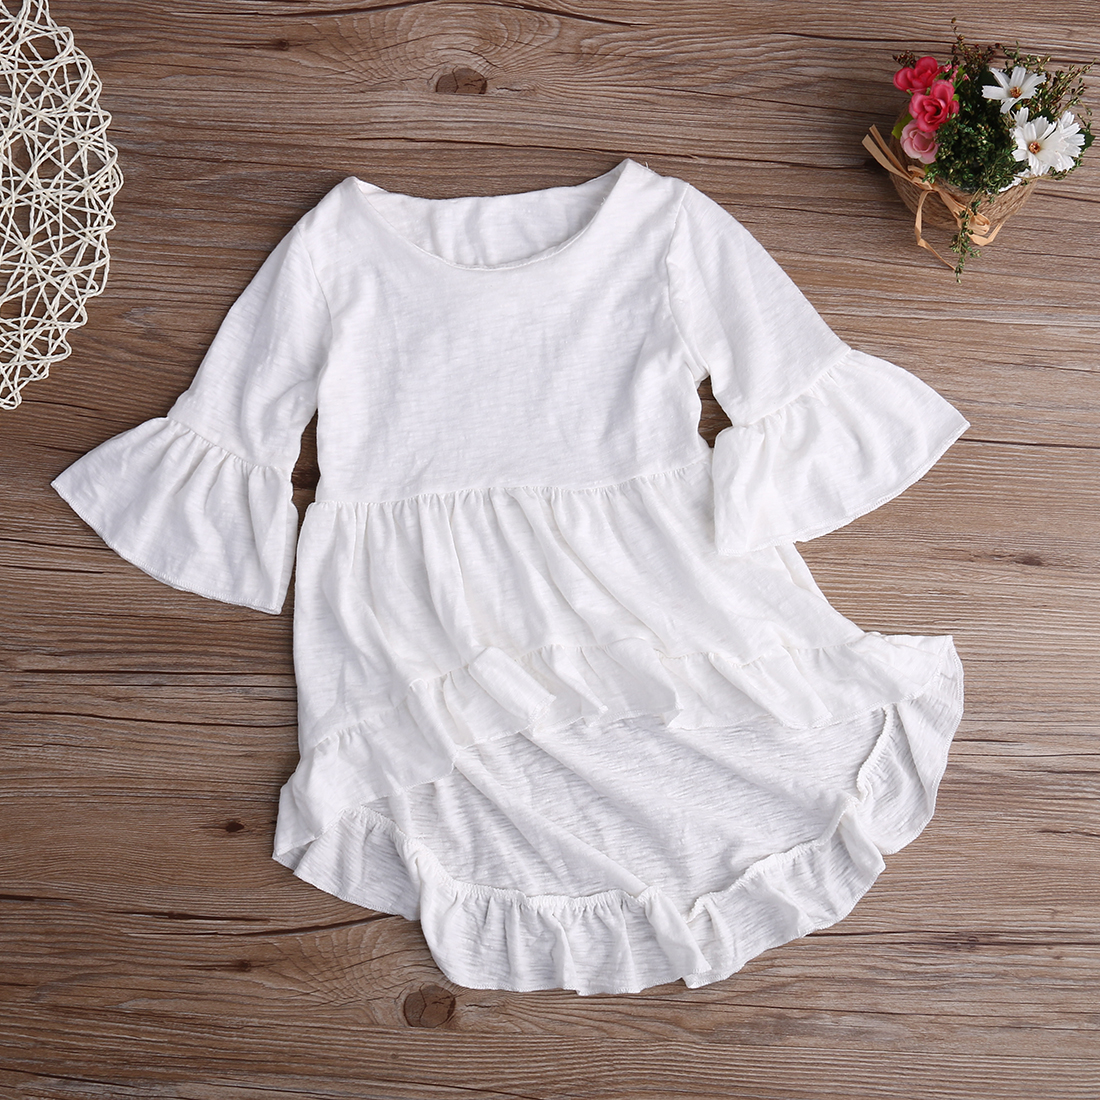 все цены на White Baby Girls Dress Frills Flare Sleeve Top T-Shirt Party Ruffles Hem Dresses 1-6Y